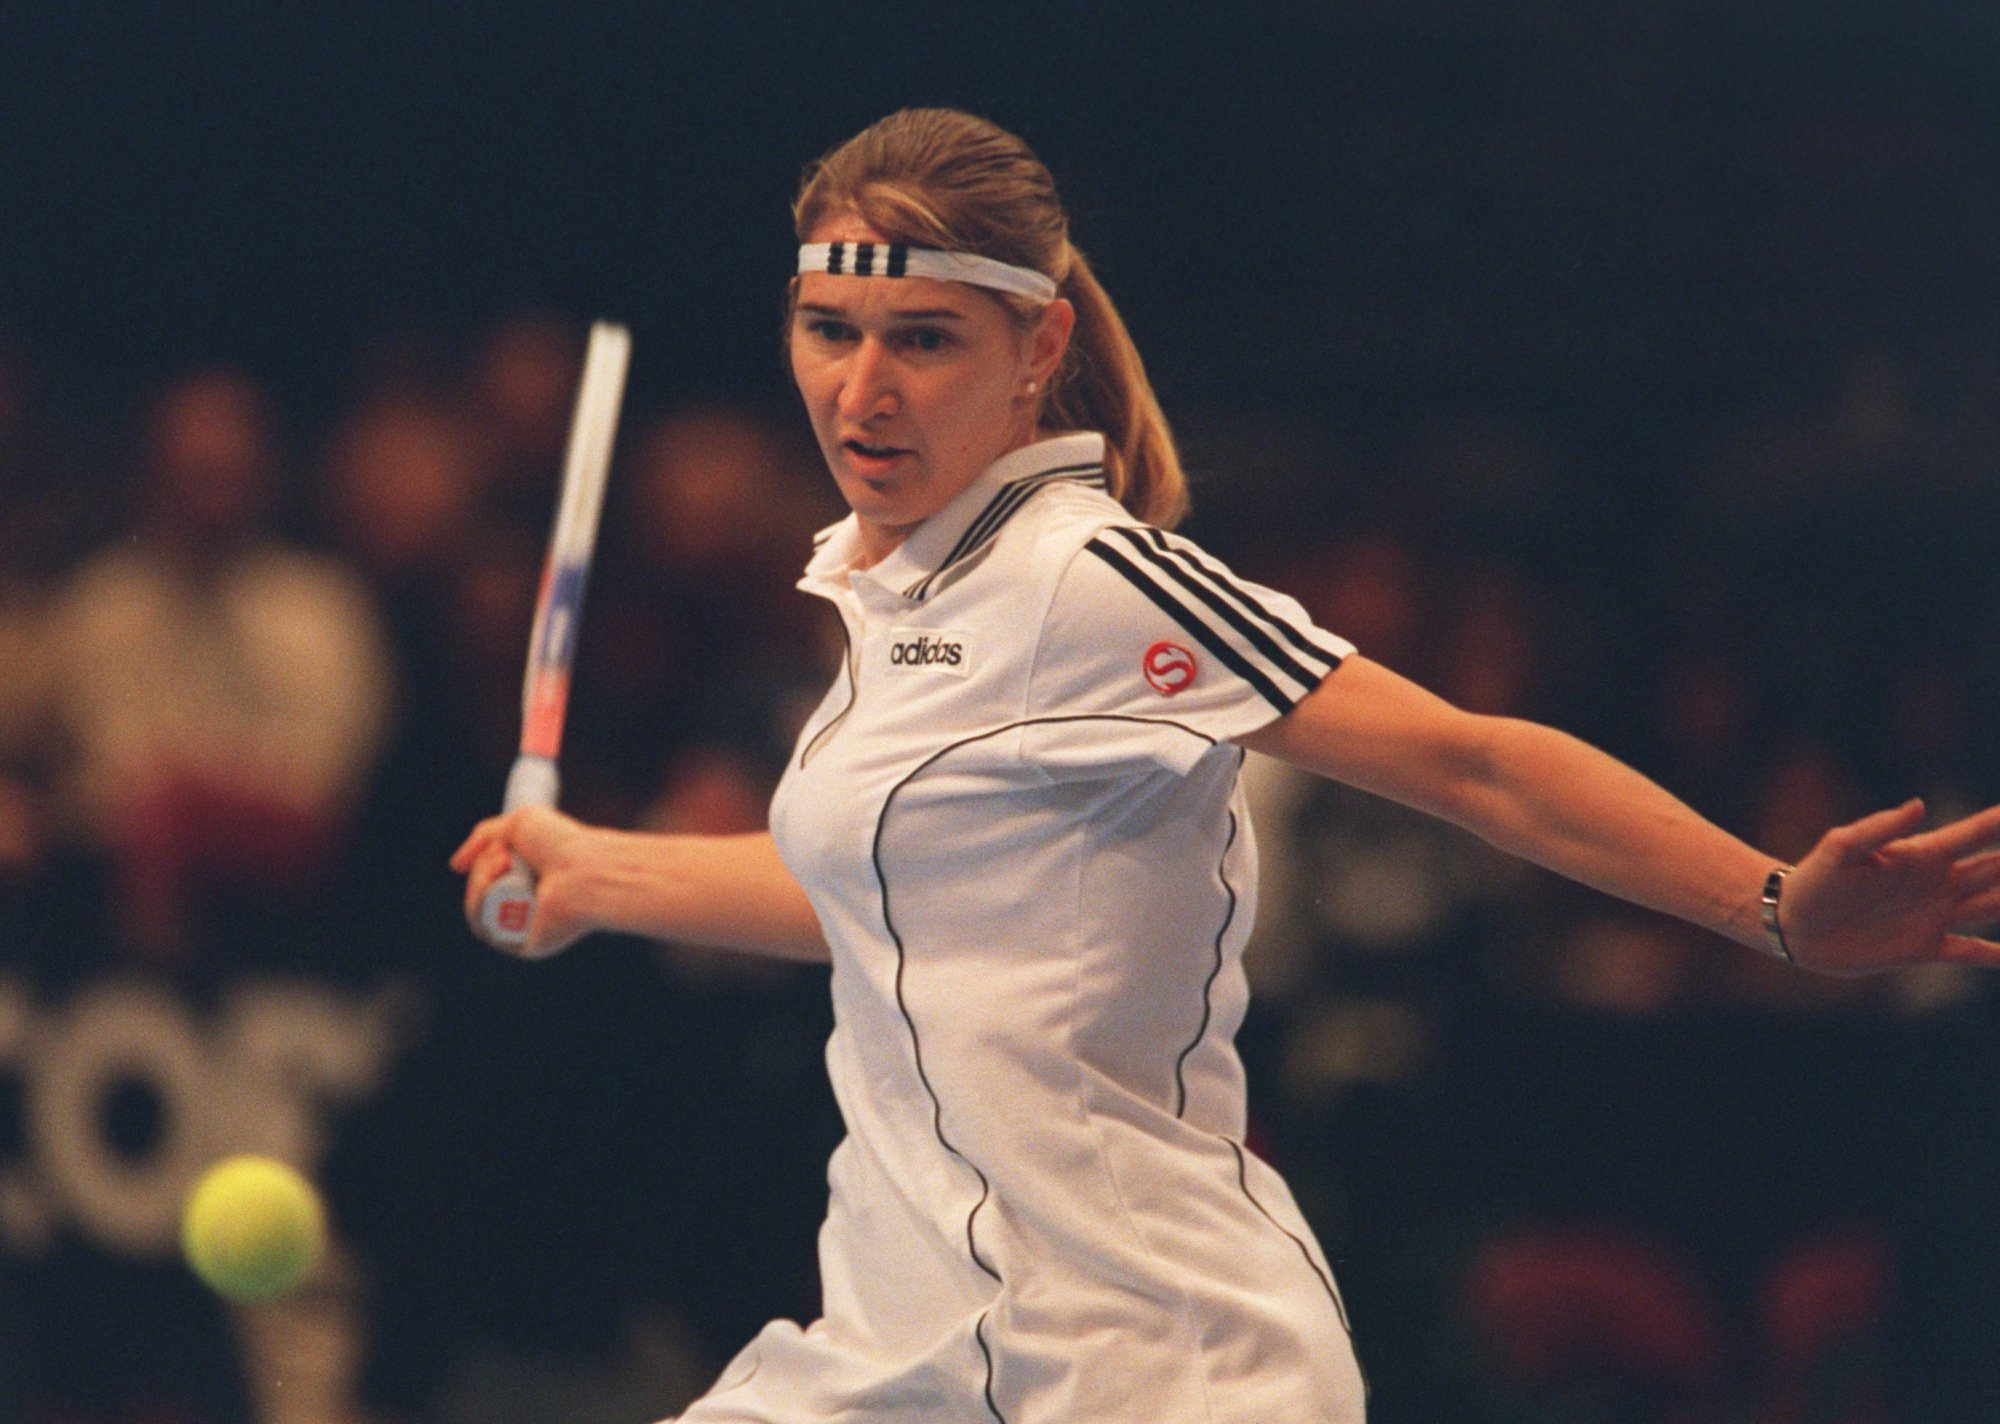 Steffi Graf beat Anke Huber in five-sets (yes, the final was best-of-five for a few years) to win her fourth title.